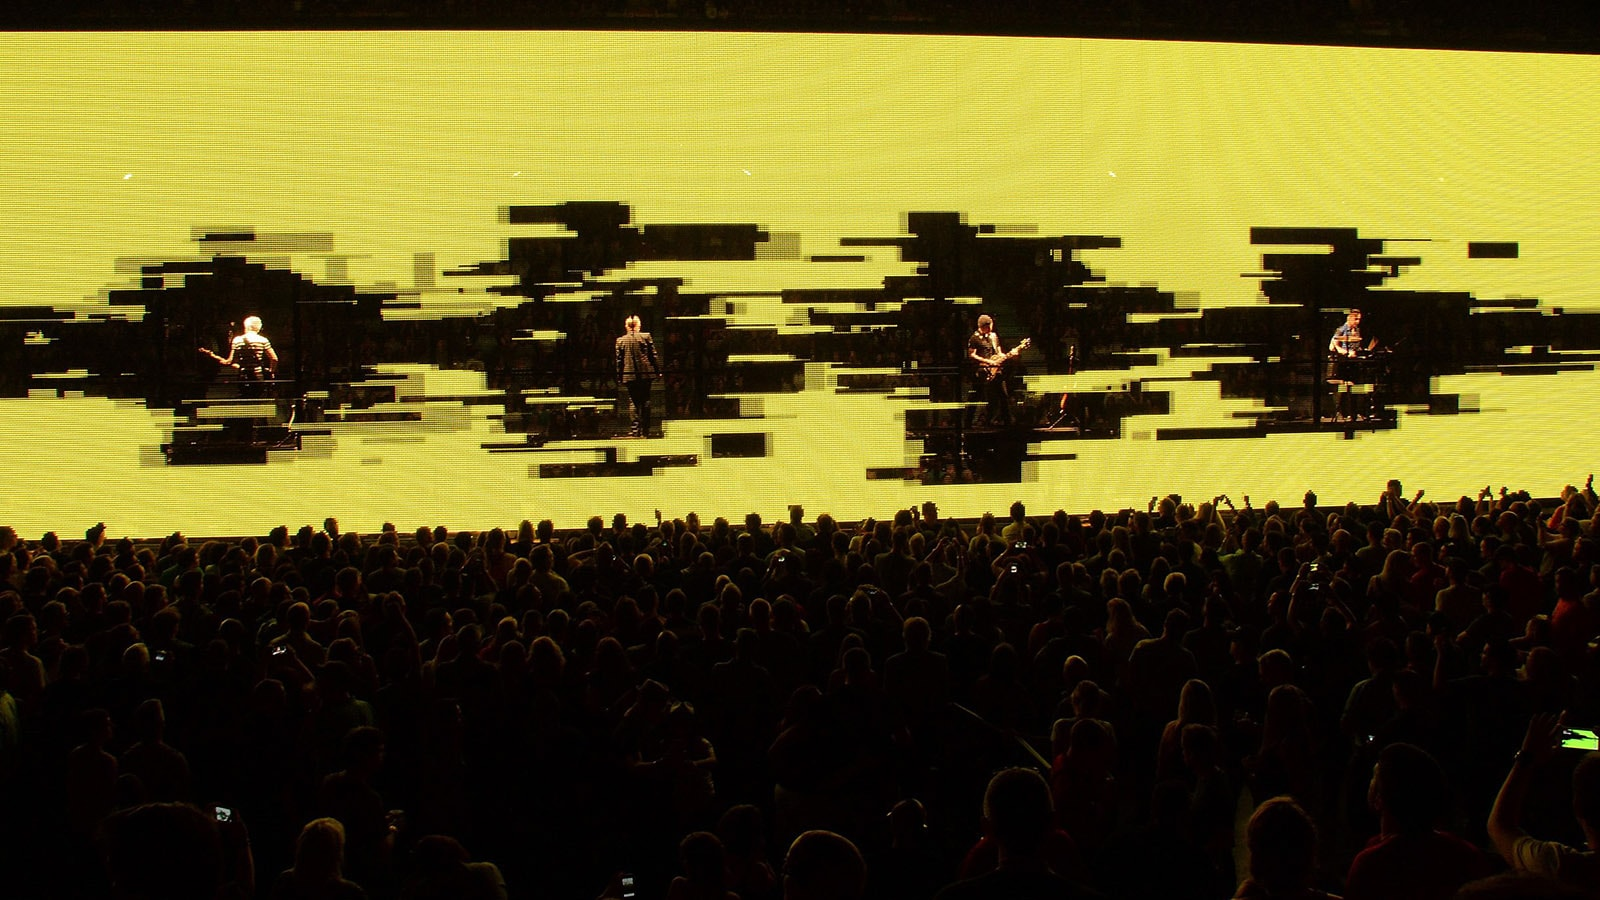 SACO DELIVERS INNOVATIVE SEE-THROUGH LED VIDEO SCREENS FOR THE U2 iNNOCENCE + eXPERIENCE TOUR 2015